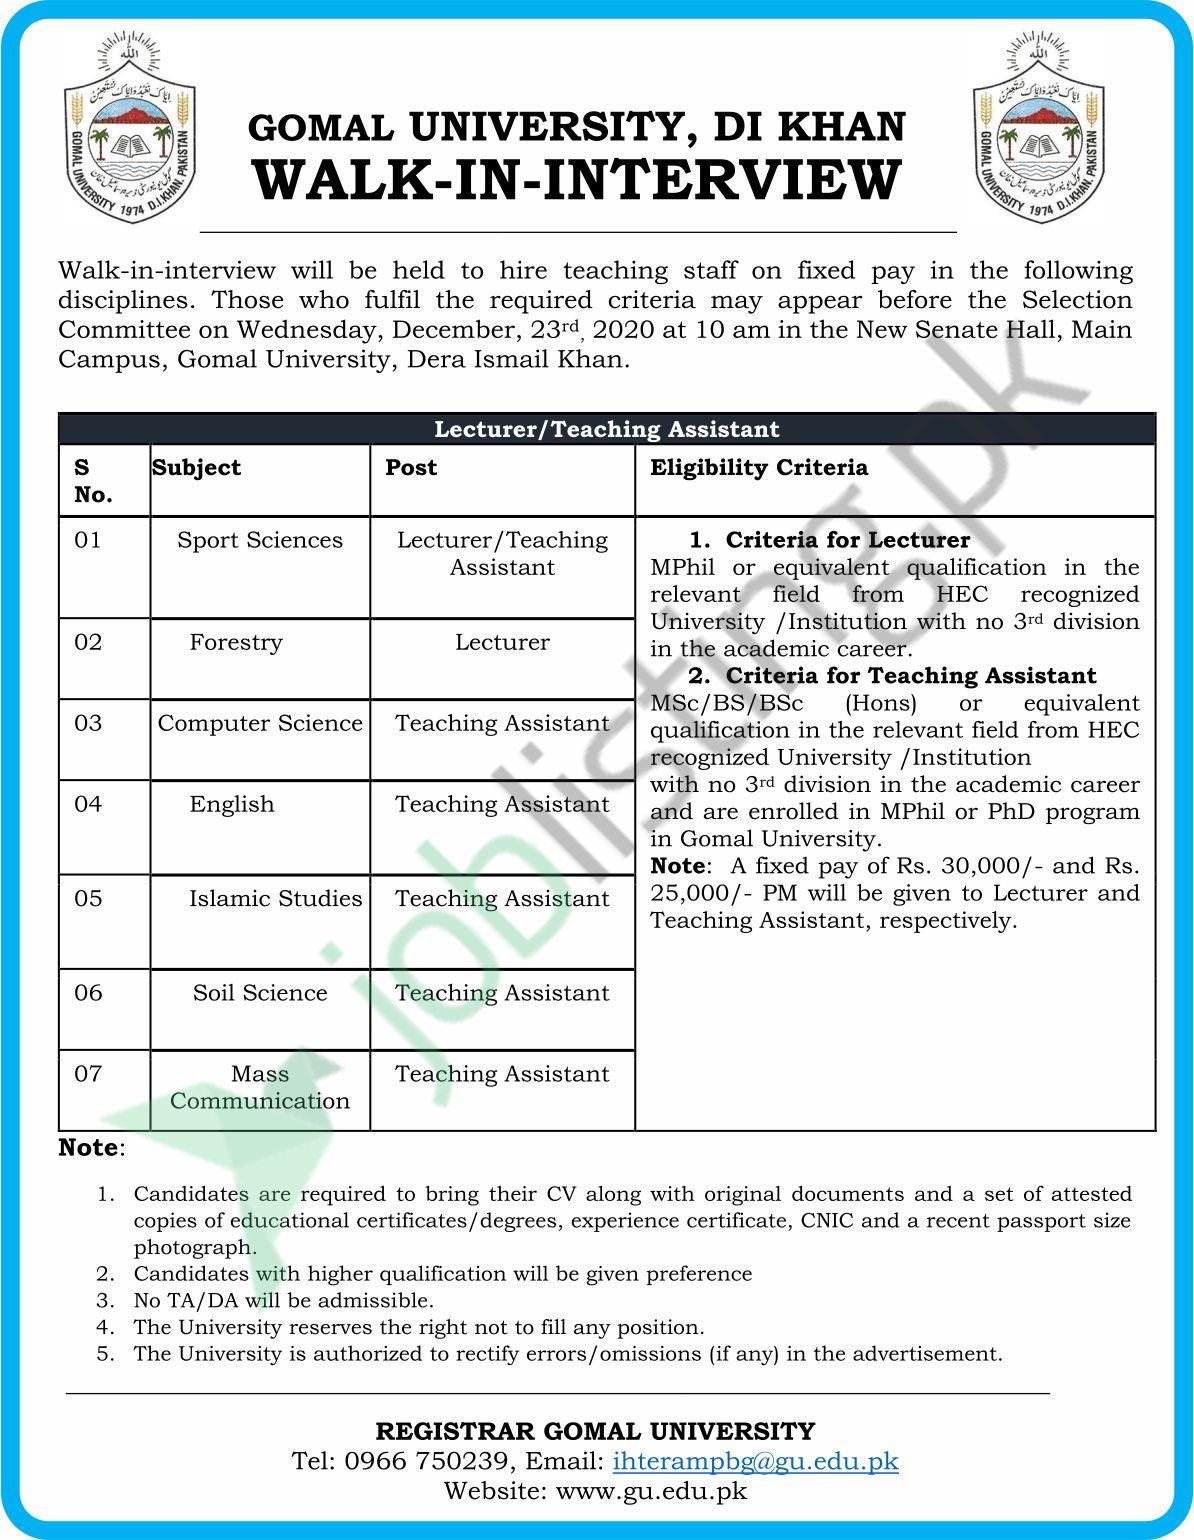 Gomal University, D.I.Khan Walk-In-Interview